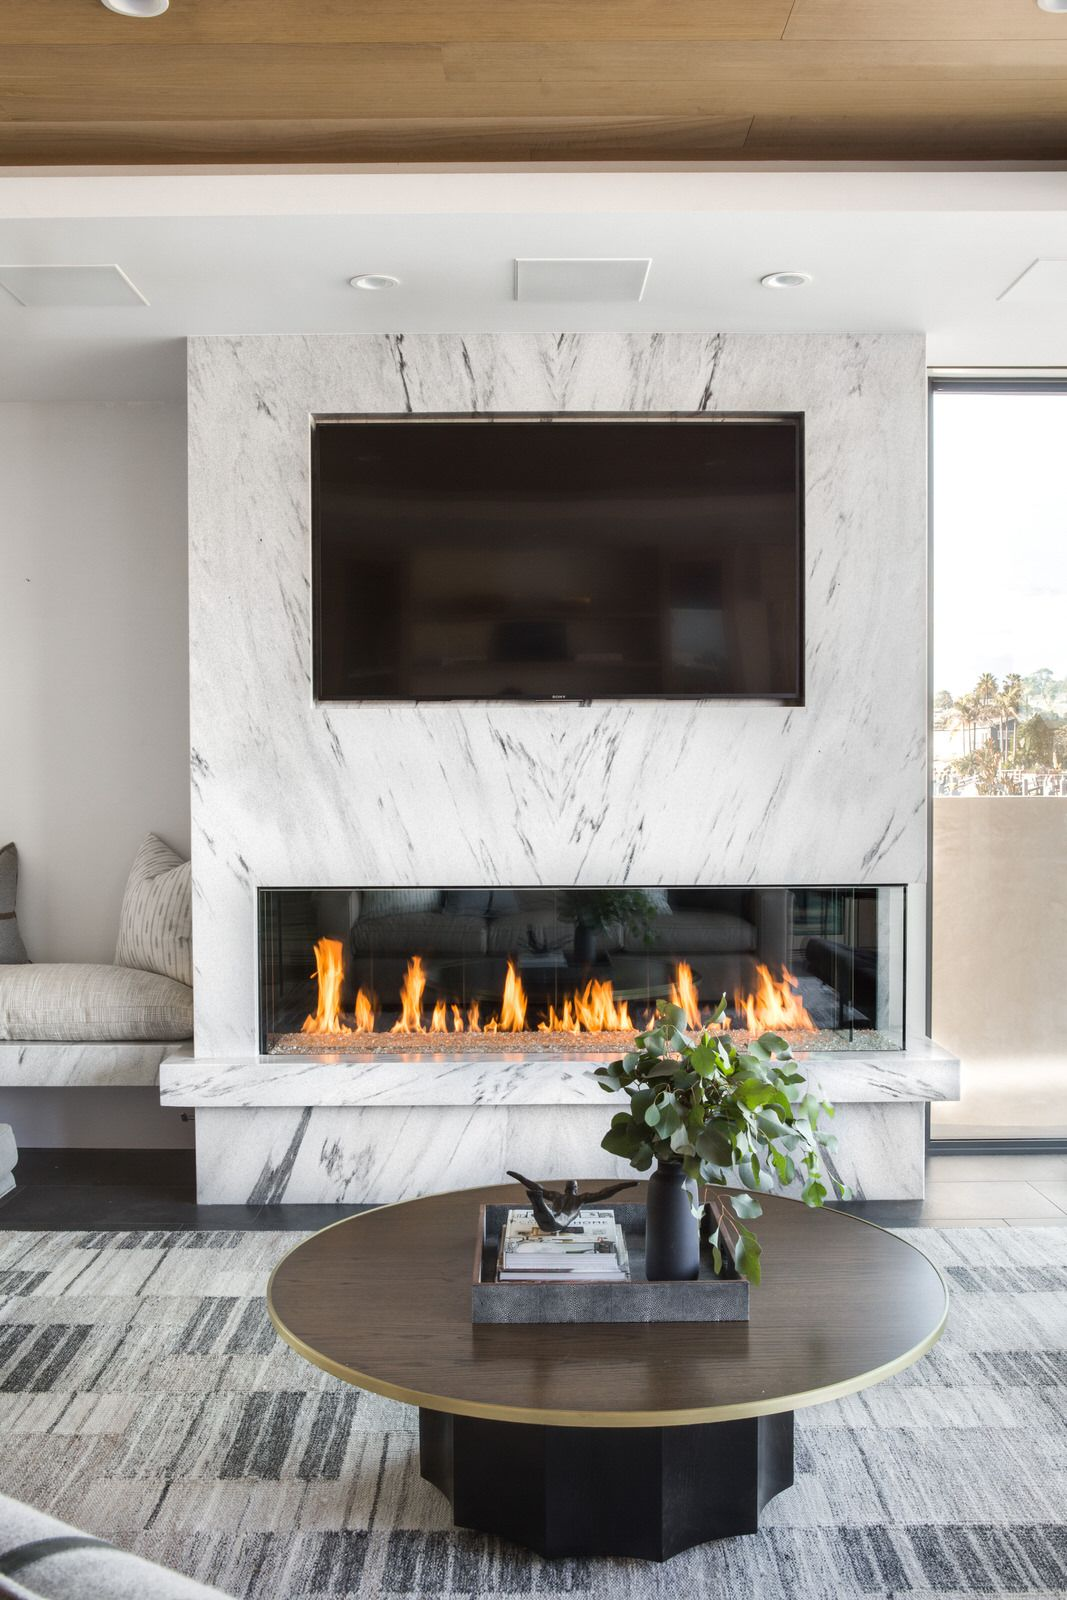 All Marble Fireplace Surround With Inset Tv So Chic And